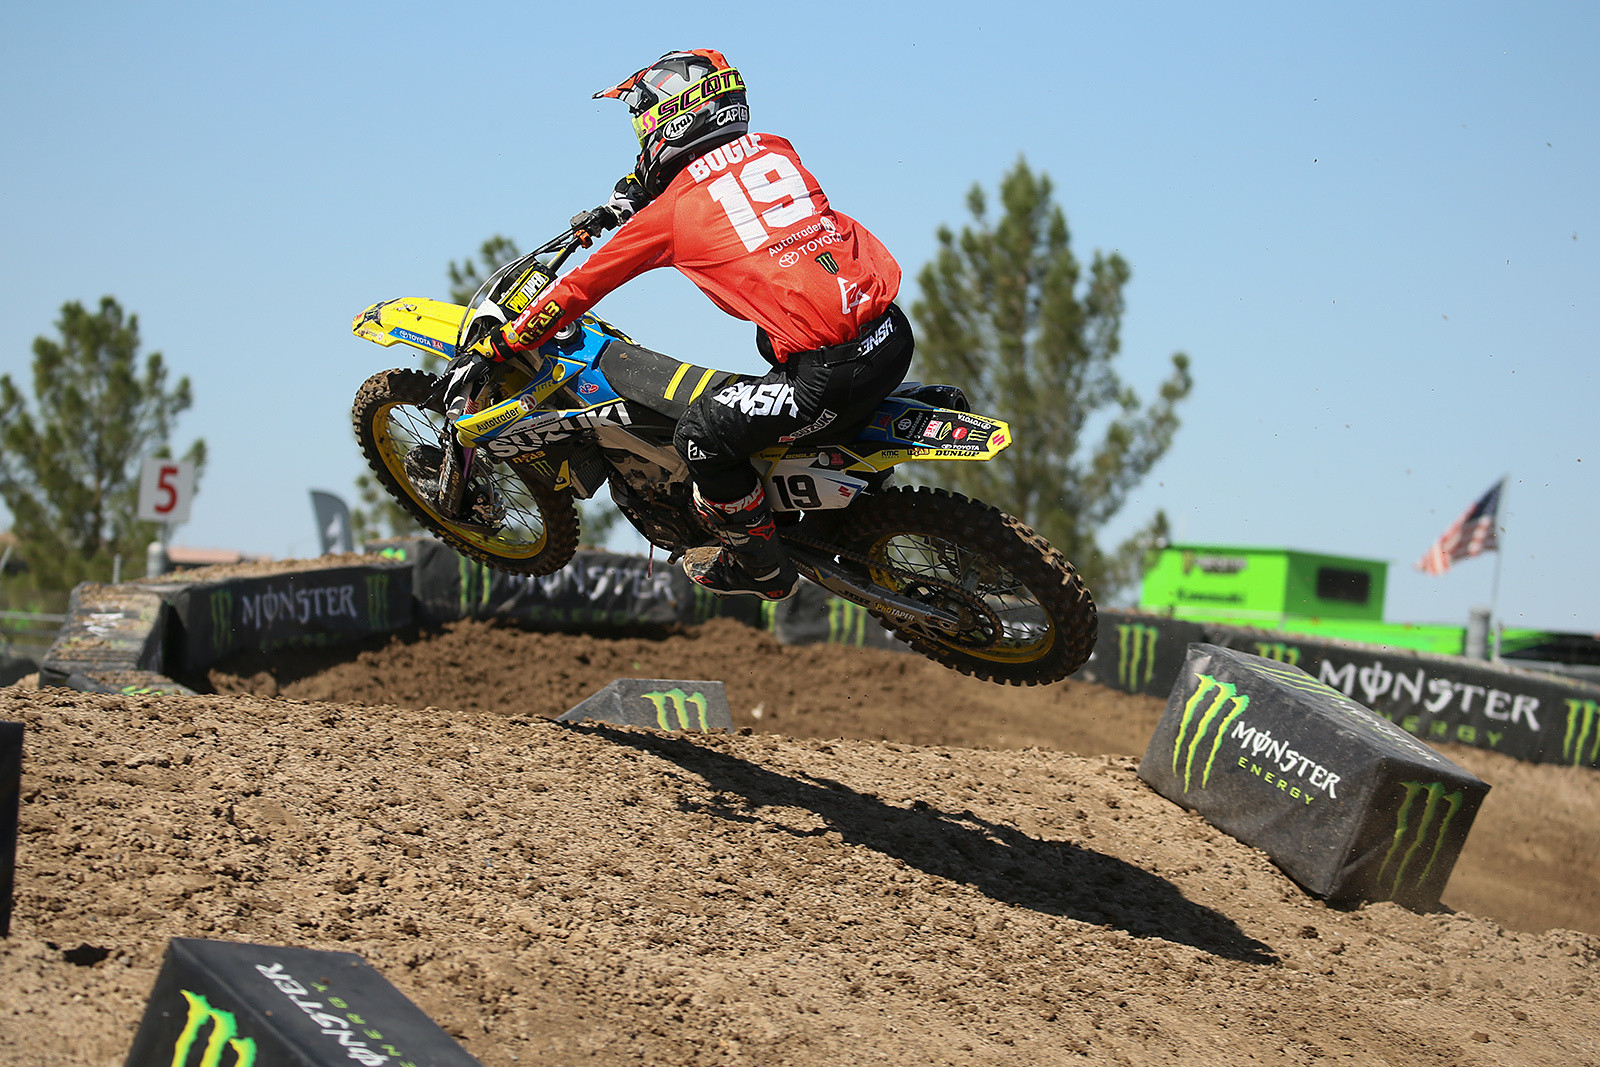 Justin Bogle was seventh in qualifying, while the top 12 are within a couple seconds of each other.